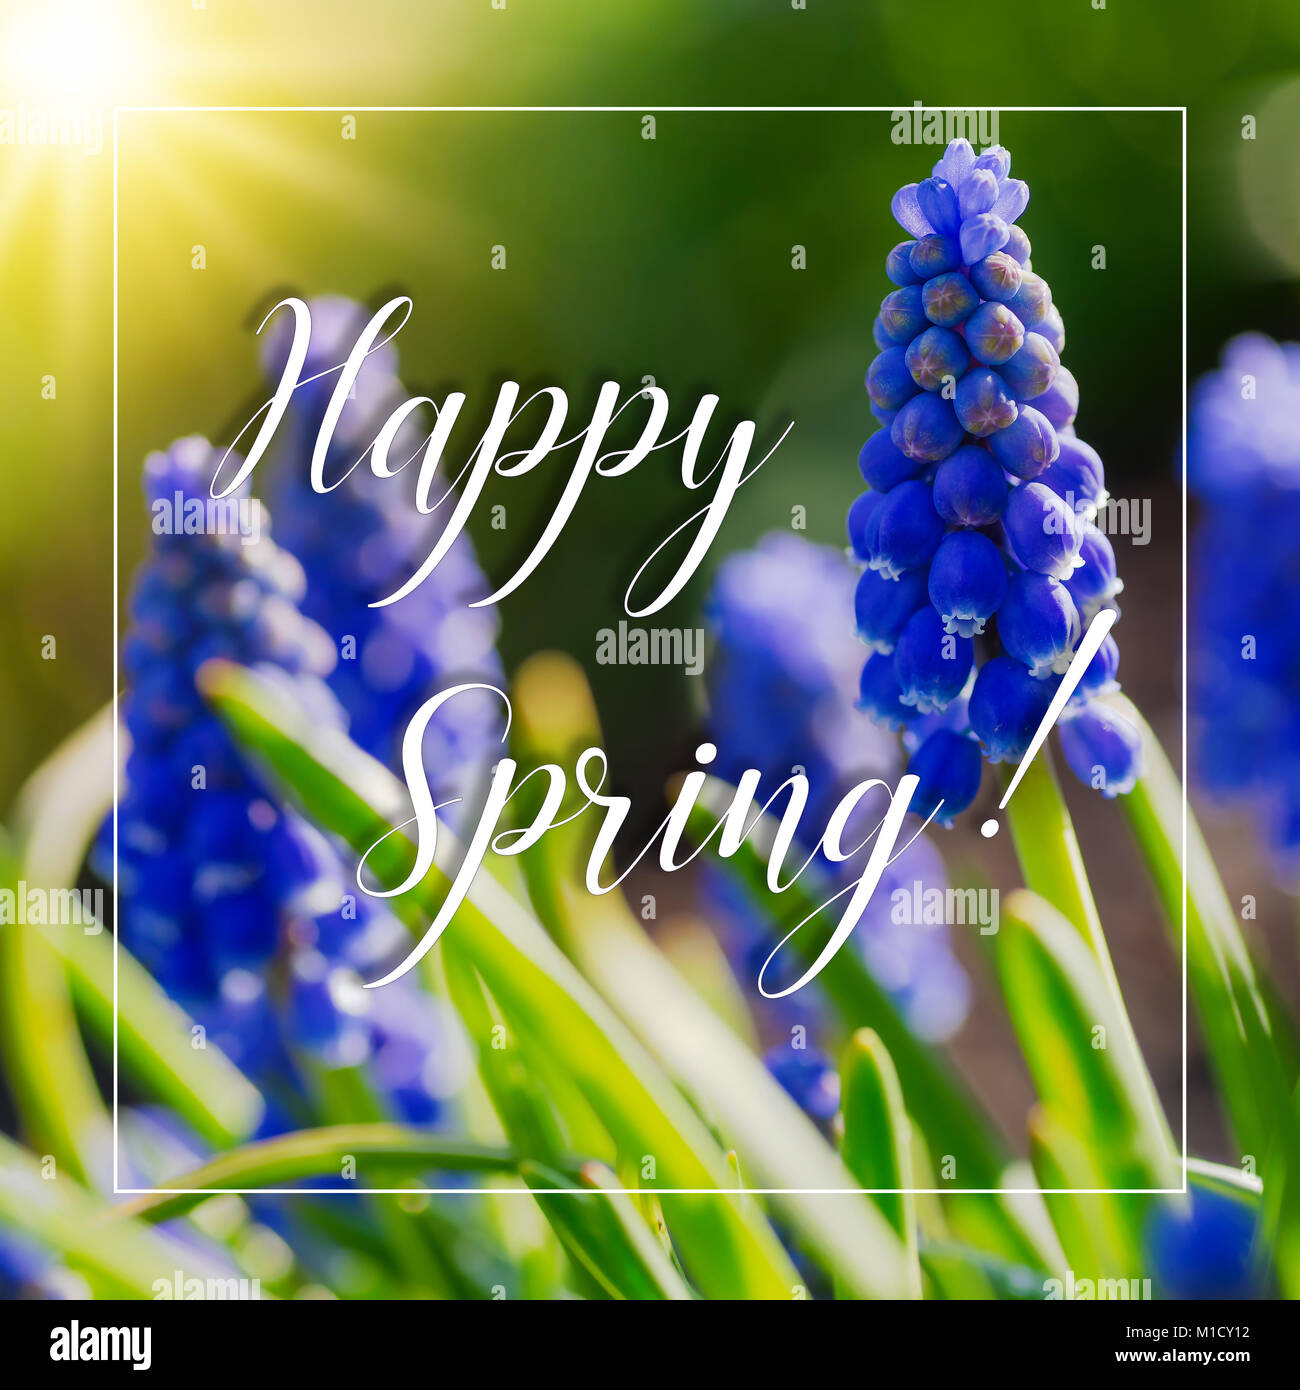 Inspirational quote 'Happy Spring' with grape hyacinth flowers. - Stock Image